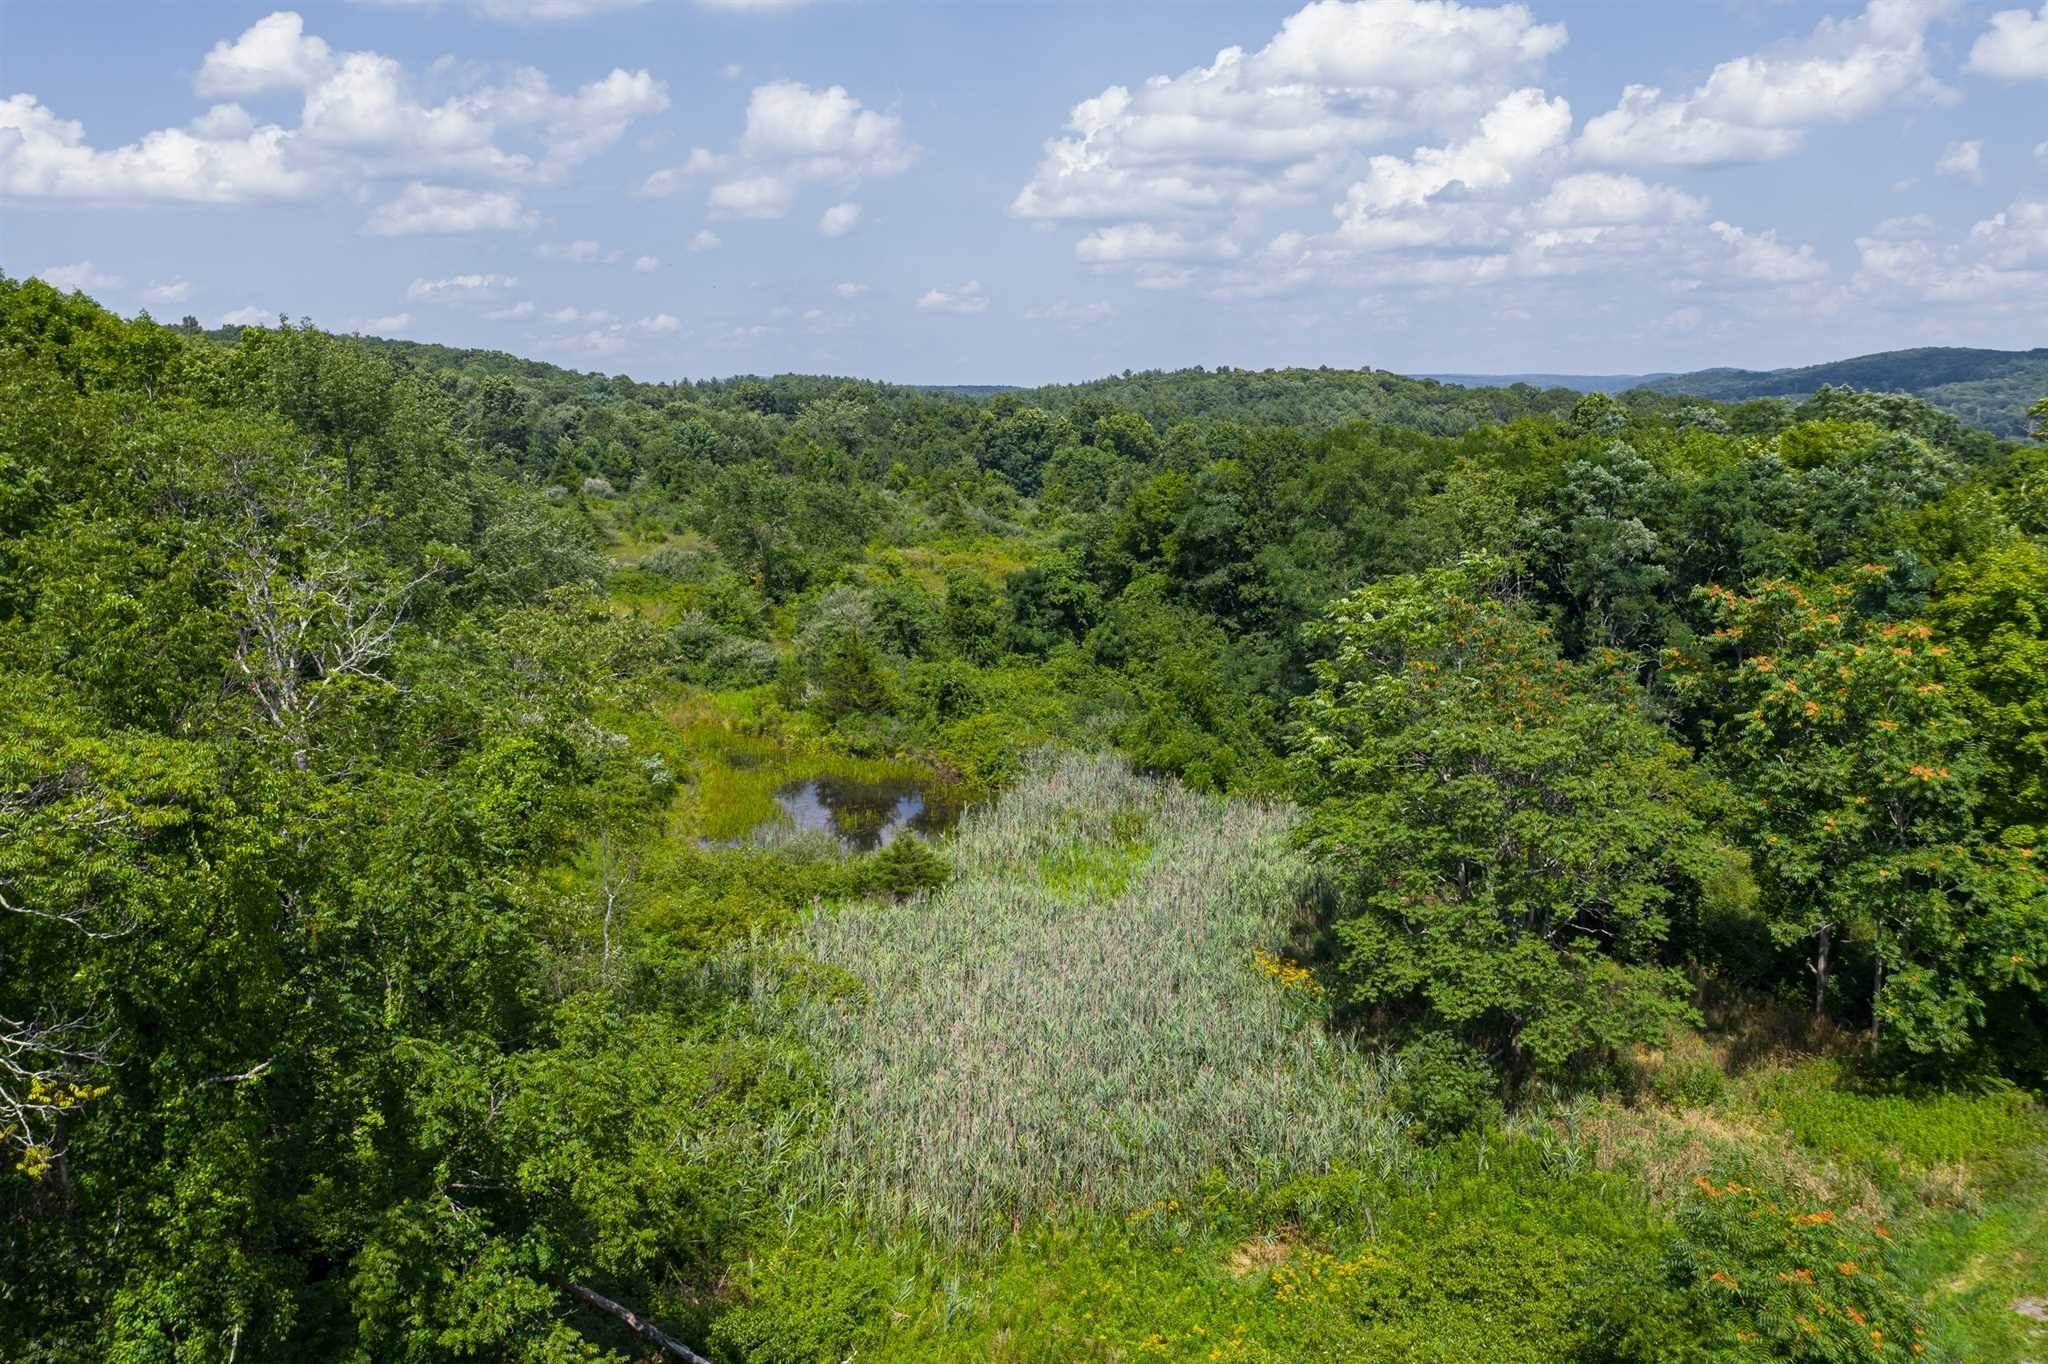 Land for Sale at 313 JAMESON HILL Road Stanfordville, New York 12514 United States